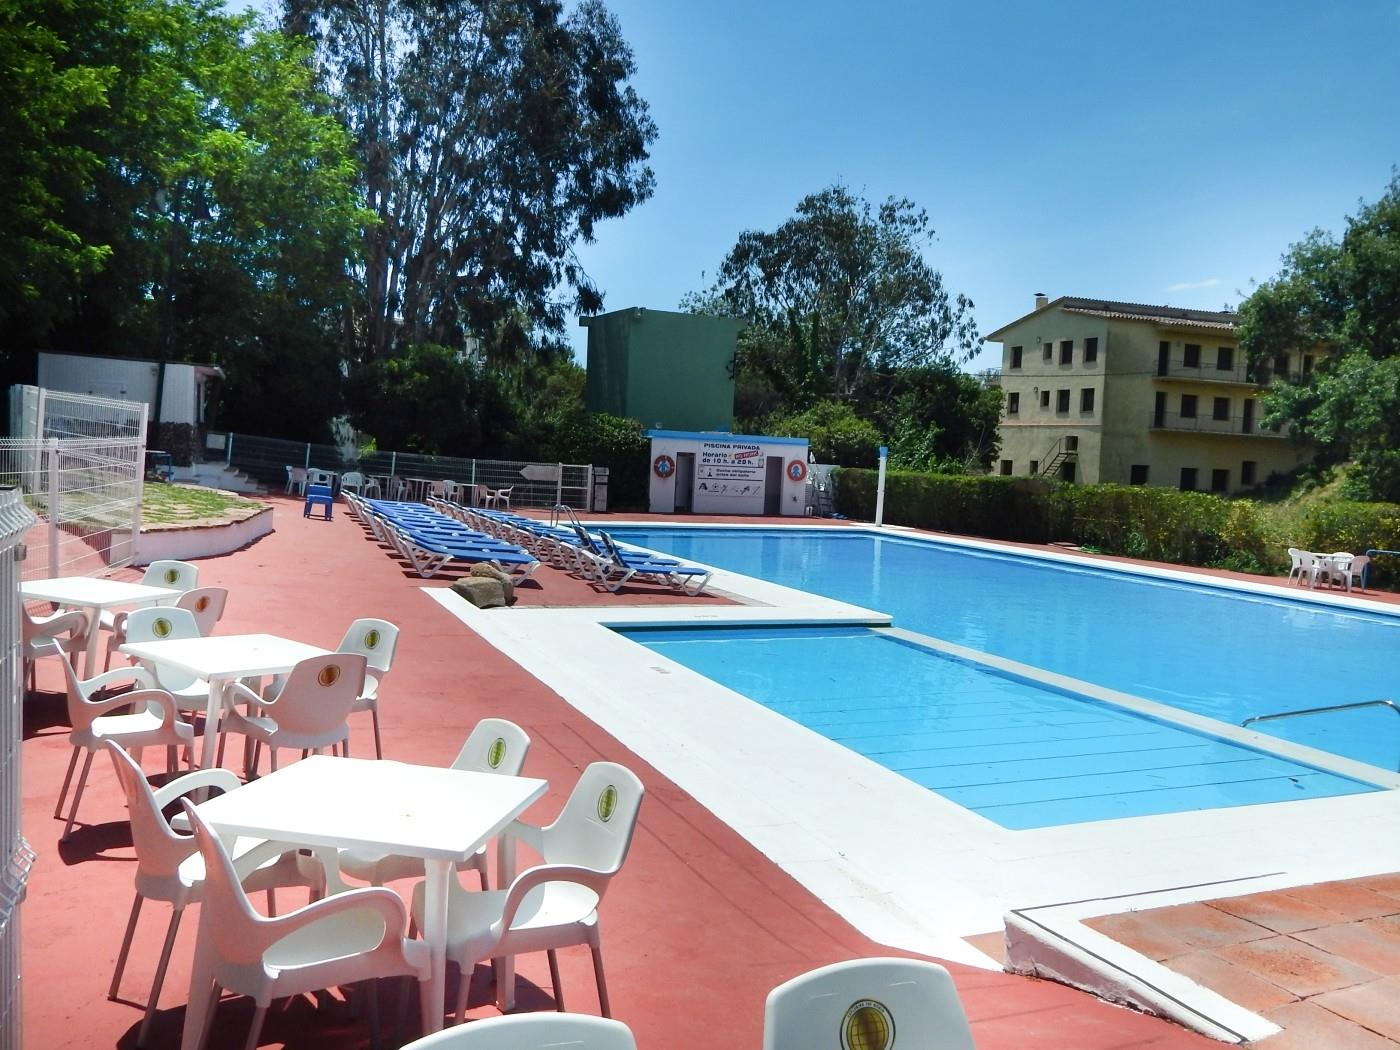 Rent Apartment with Swimming pool in Platja d'Aro - Gardenies Planta Baixa Piscina i Wifi - 2